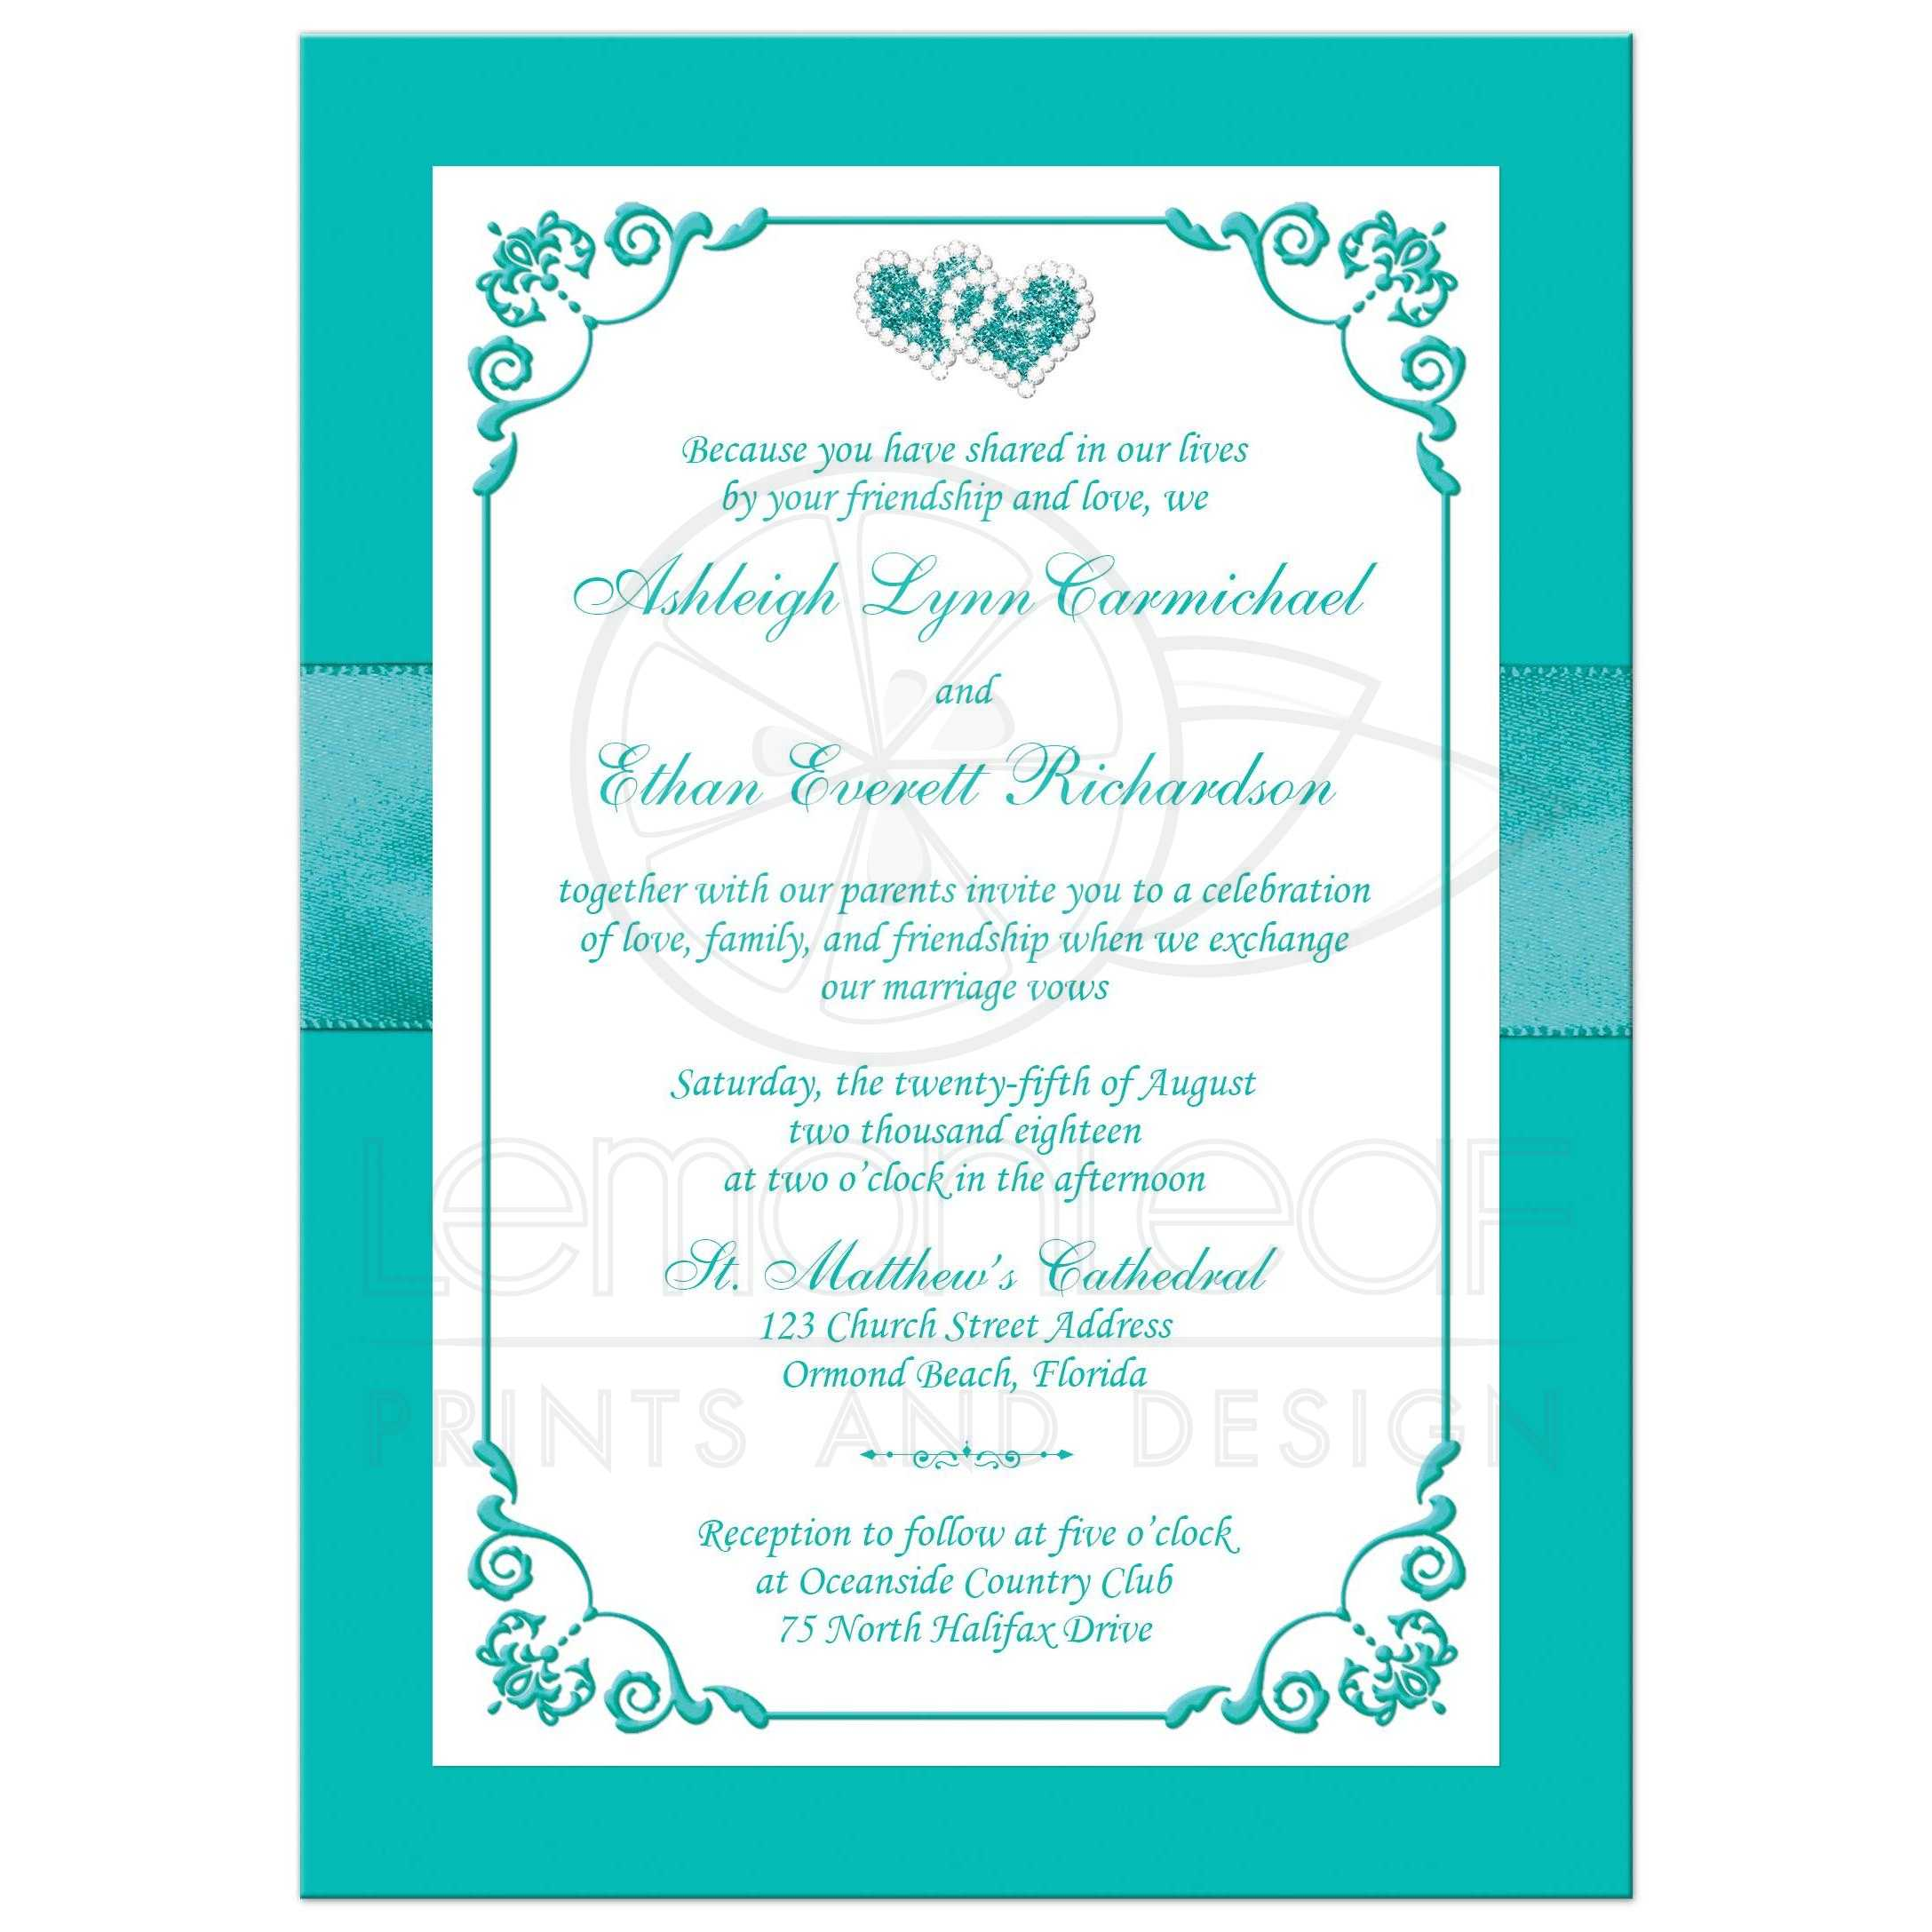 Aqua-Marine, White Floral Wedding Invitation with PRINTED Ribbon ...